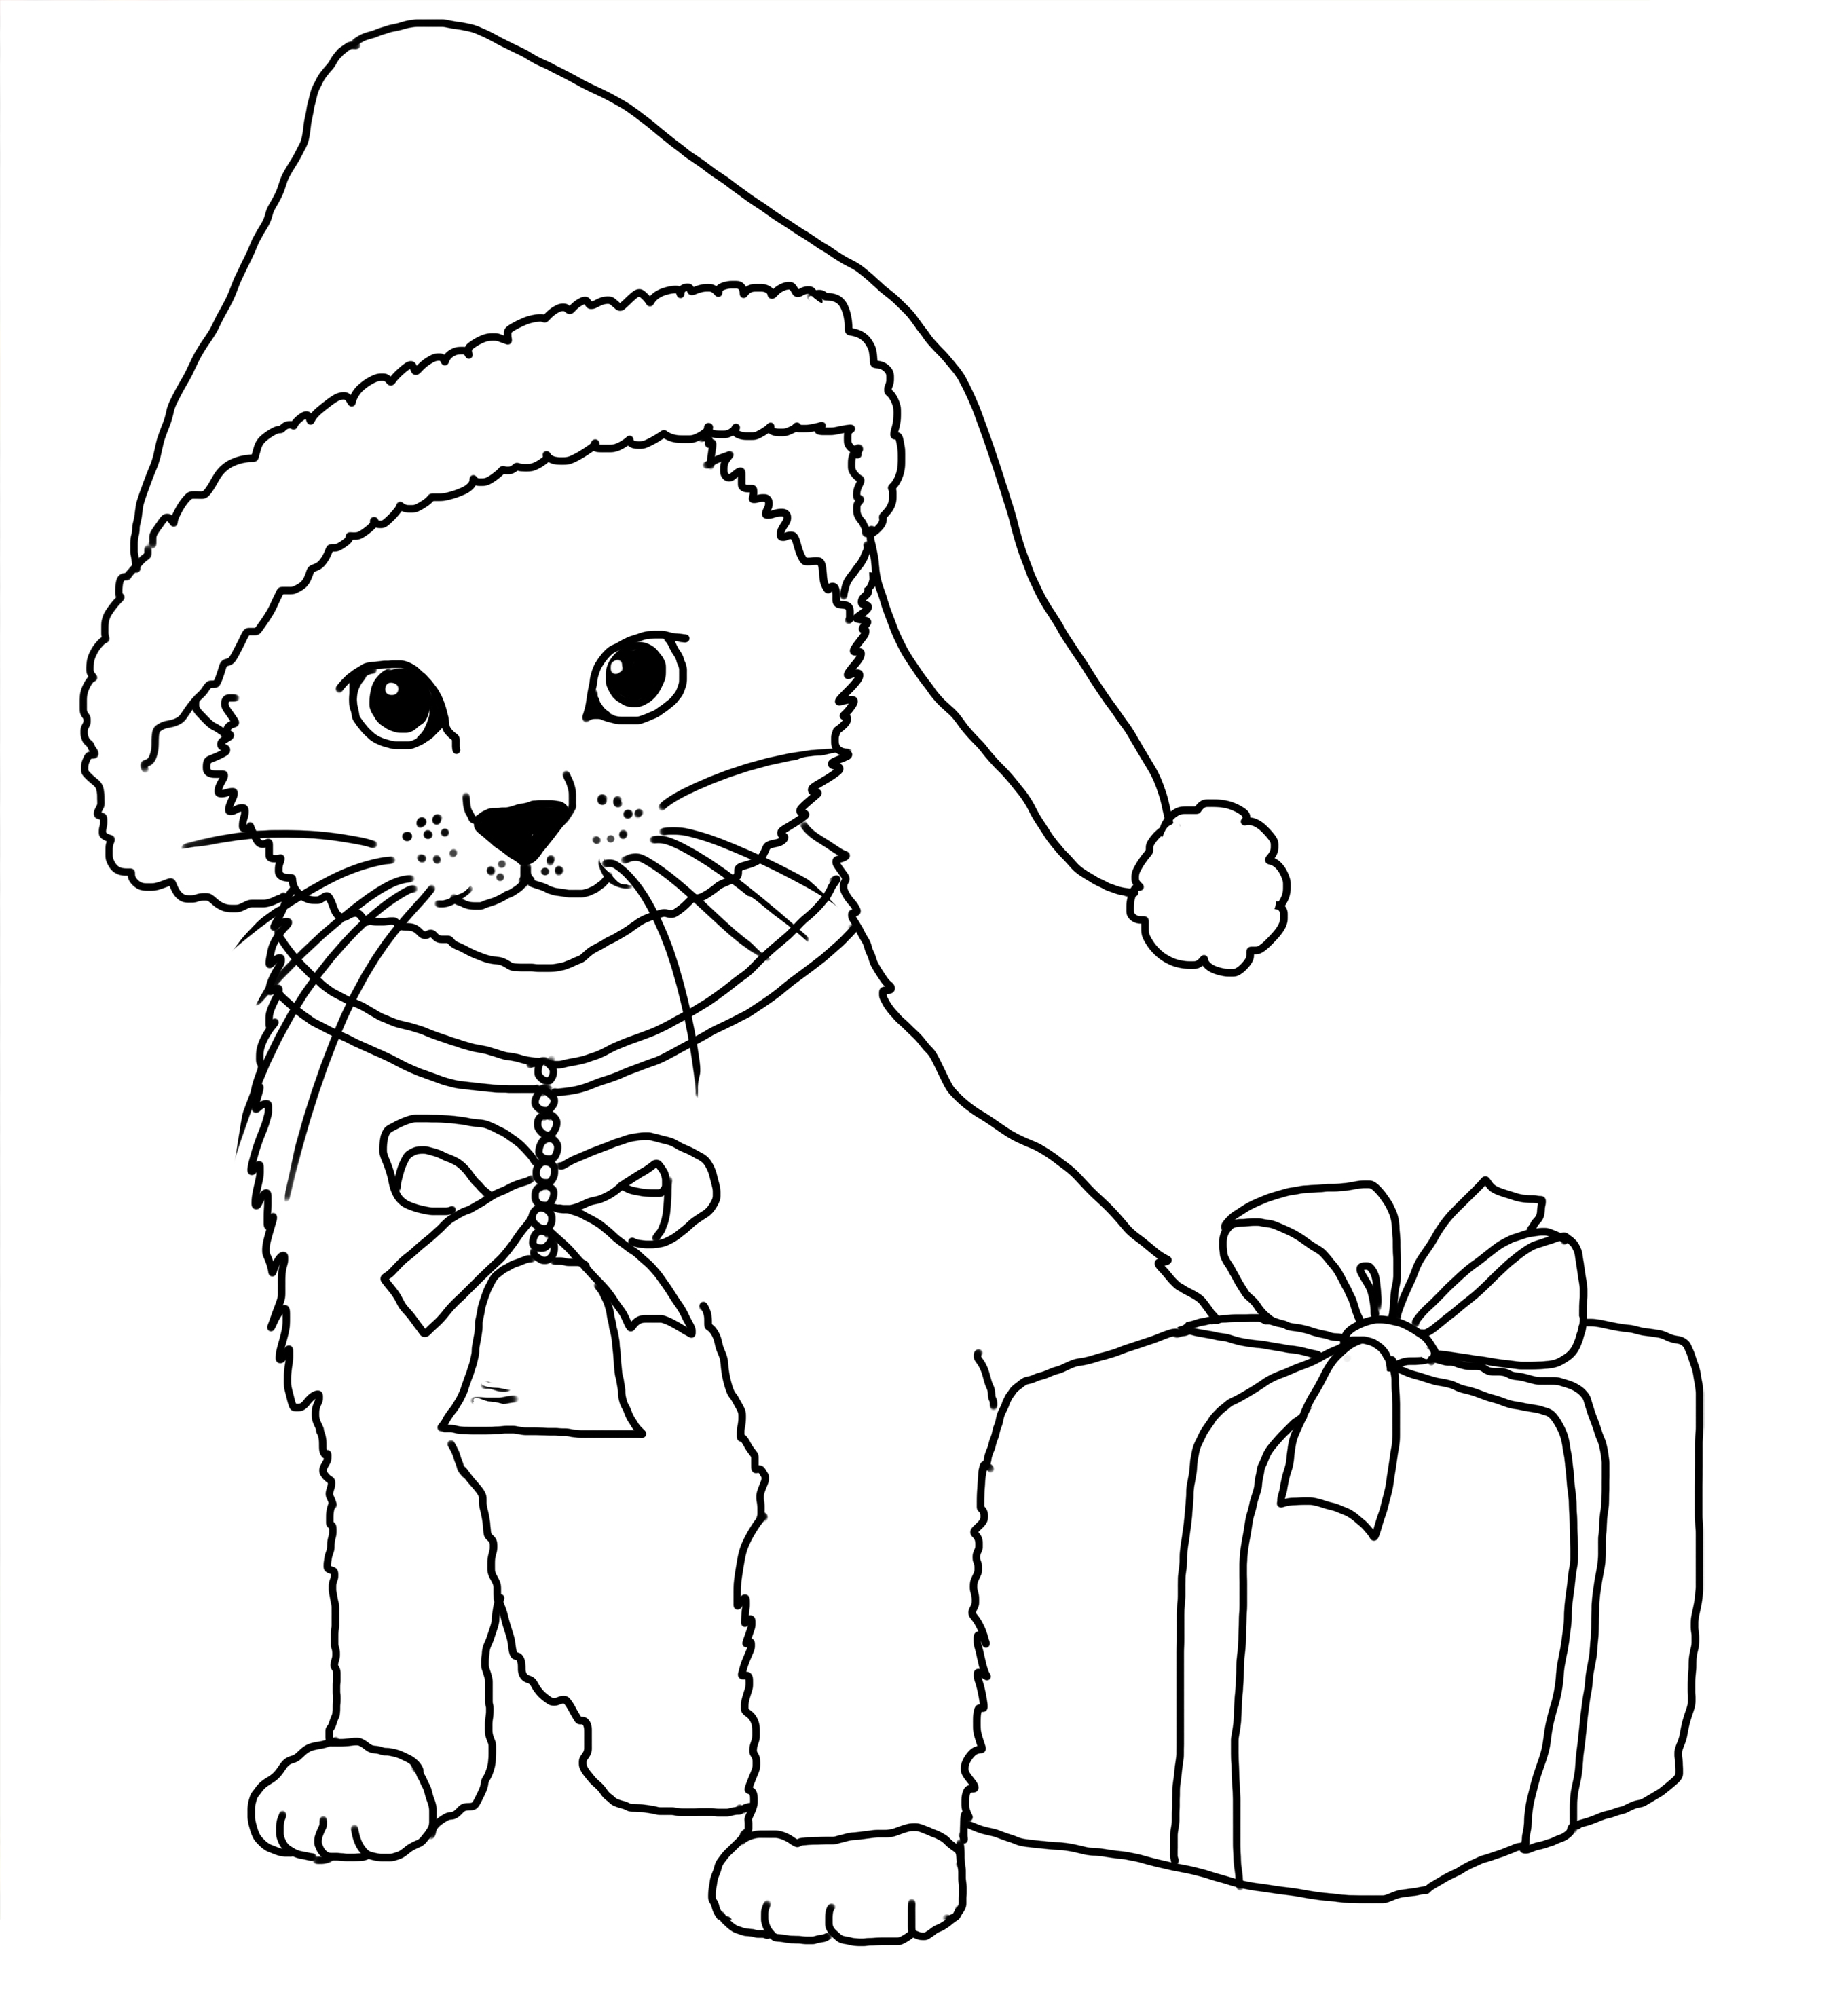 christmas coloring pages cats | Christmas Coloring Pages